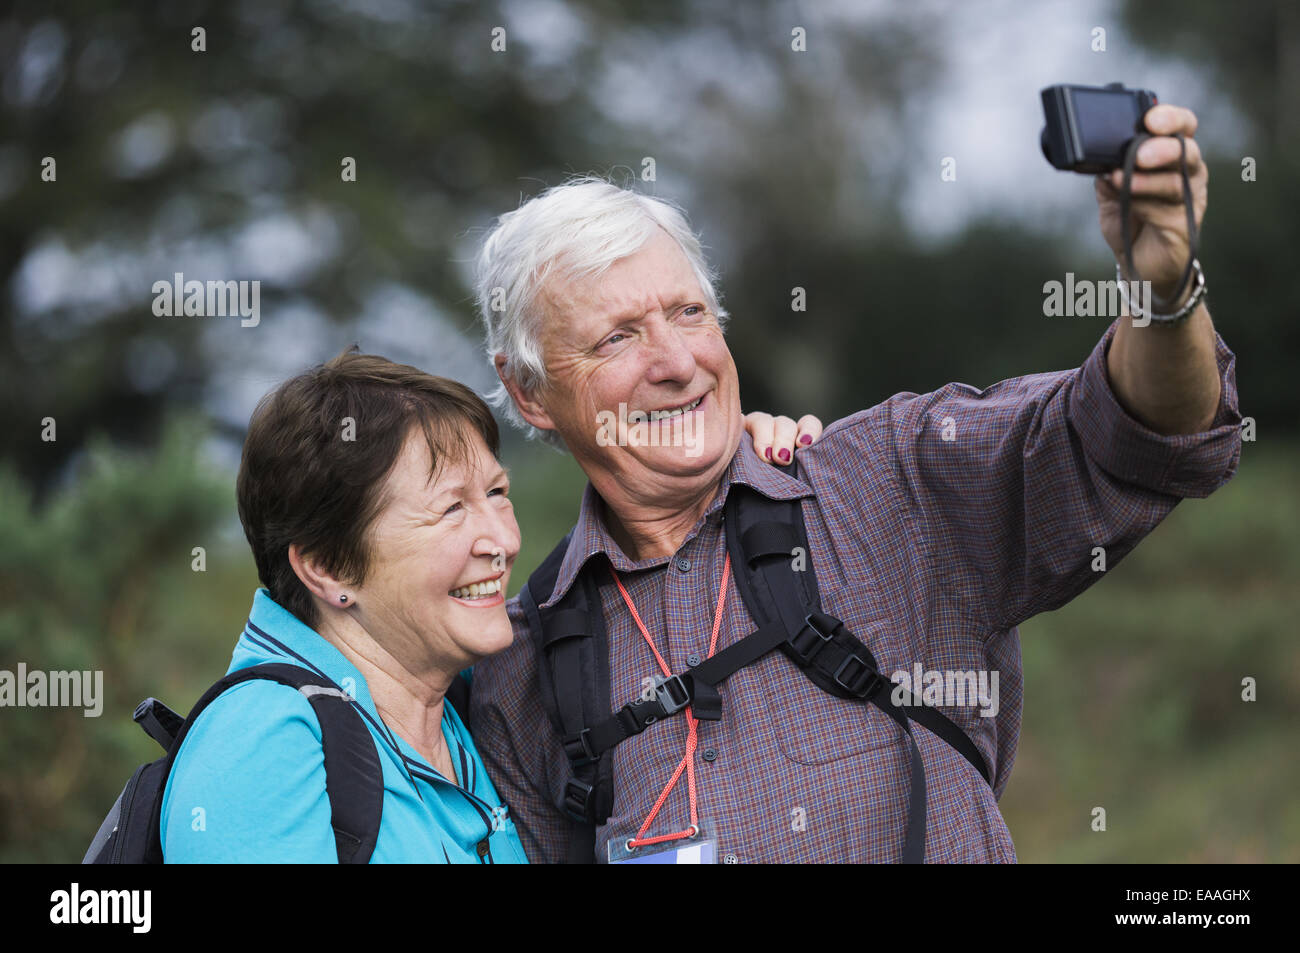 A mature couple taking a selfy photograph while out walking. - Stock Image